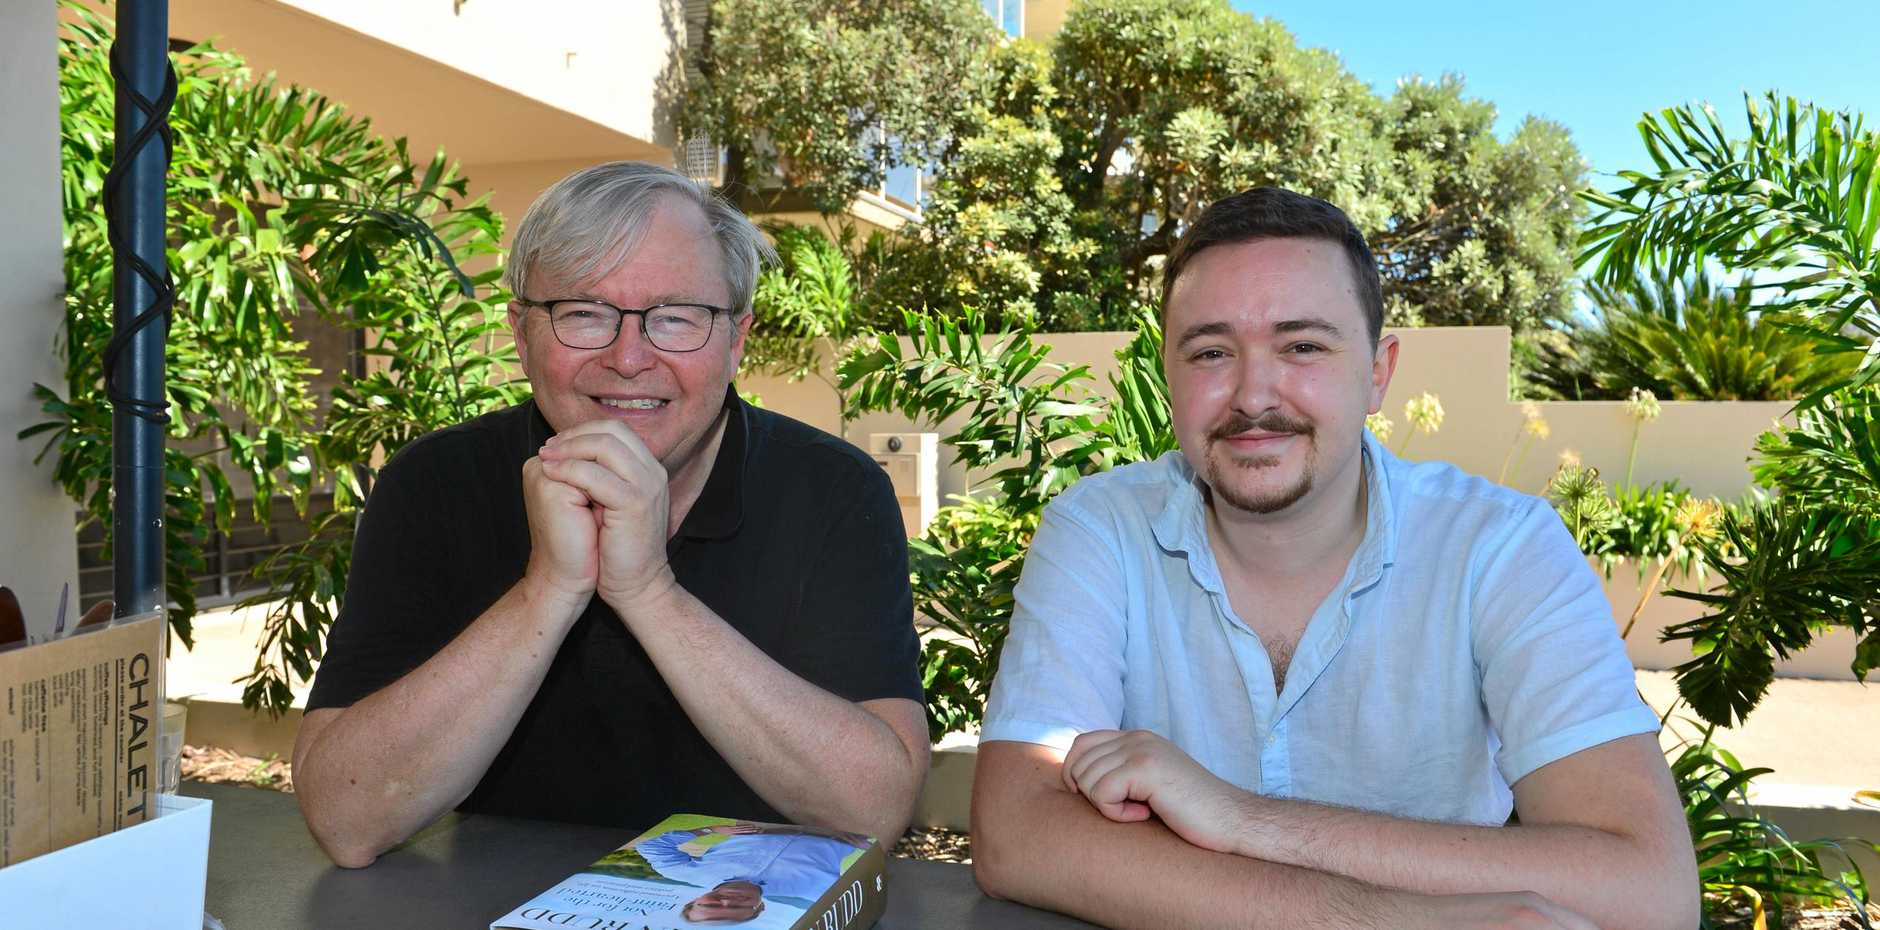 FORMER Prime Minister Kevin Rudd with his son Marcus and dog Abby at The Chalet & Co Cafe in Sunshine Beach, is back in Australia for a holiday at the family's northern beaches home just kilometres from where he grew up in Eumundi.